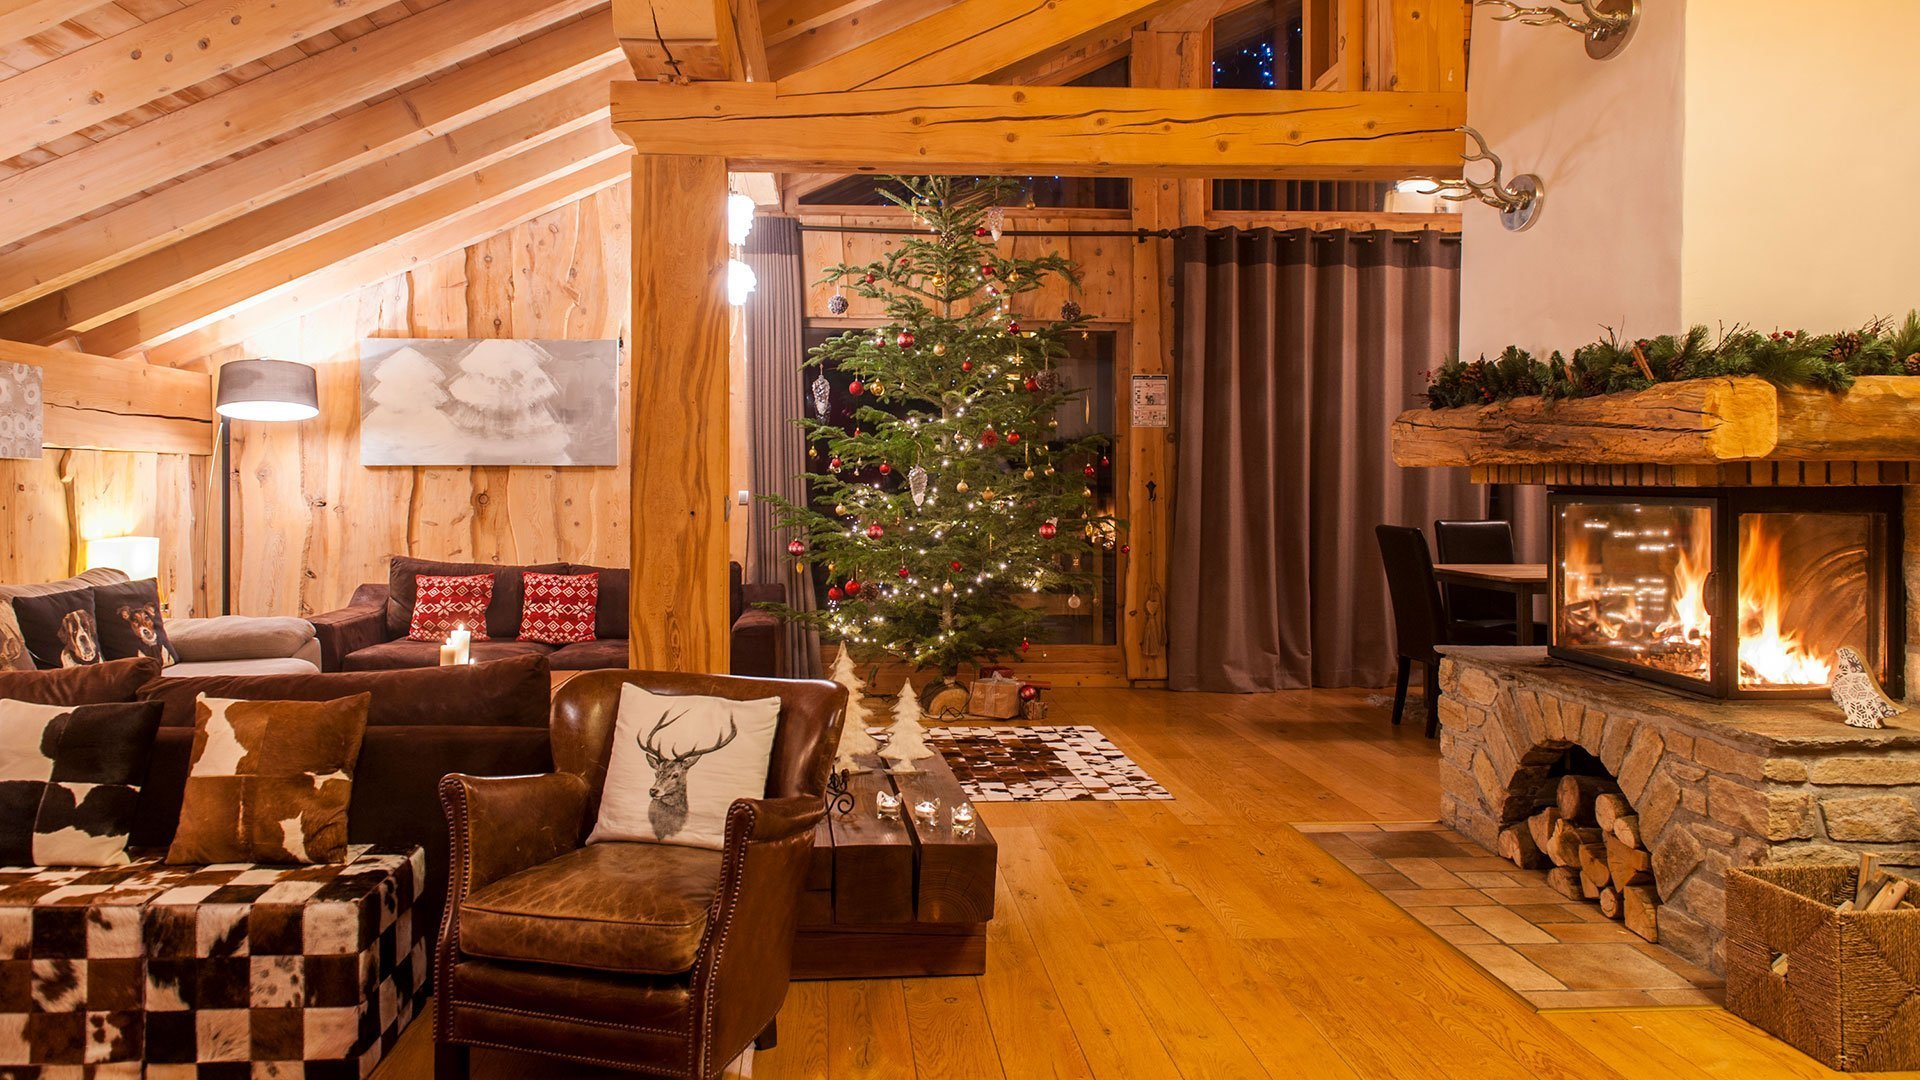 The Peak Luxury catered chalet at Christmas